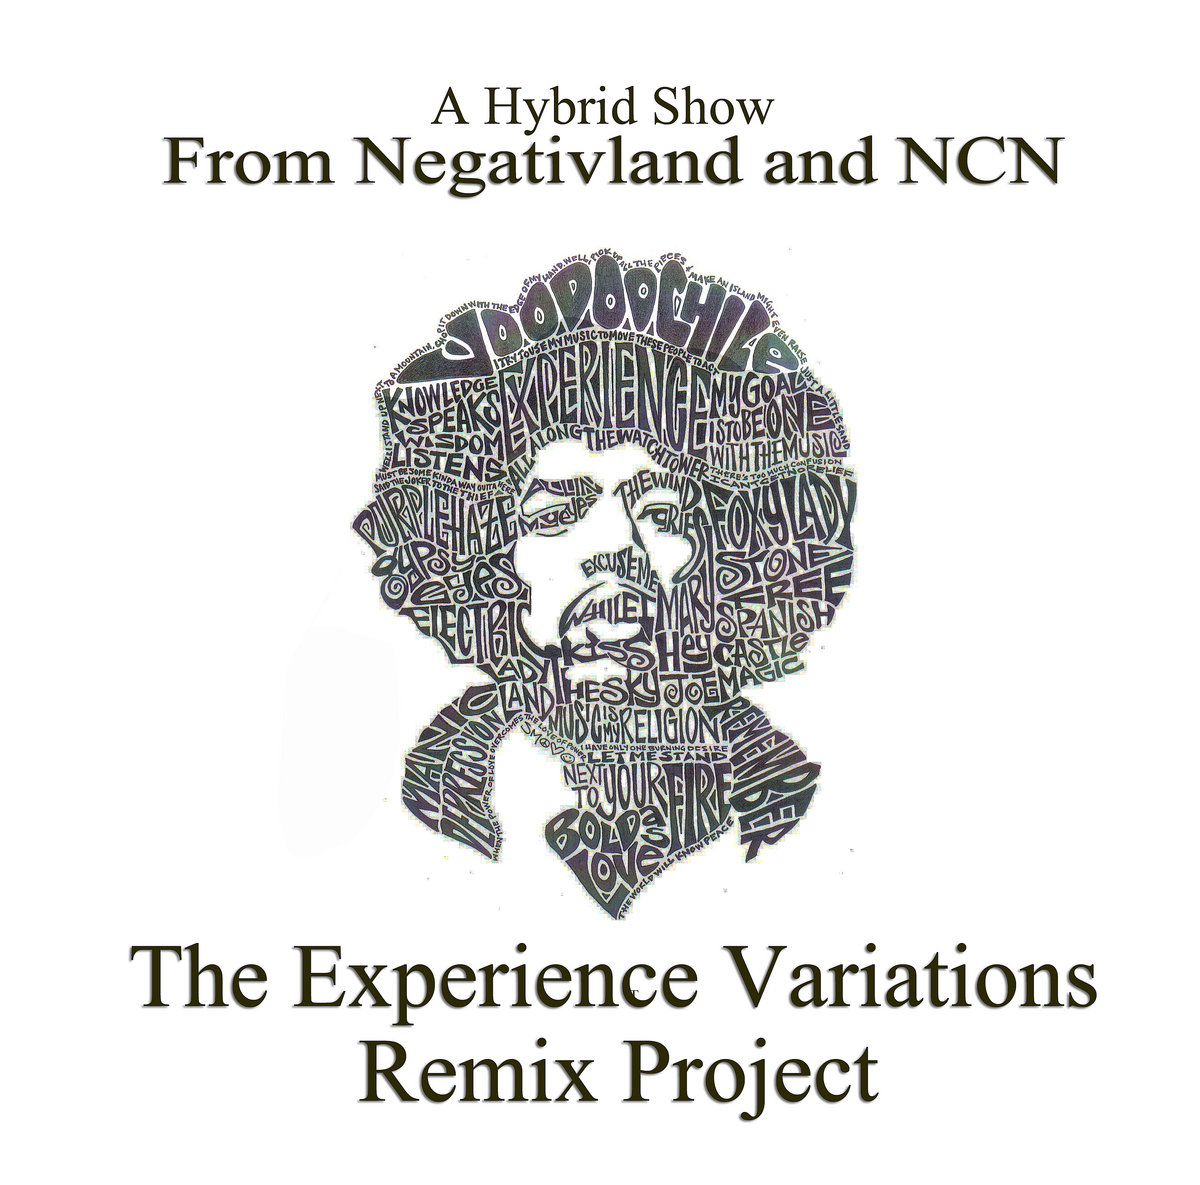 The Experience Variations Remix Project